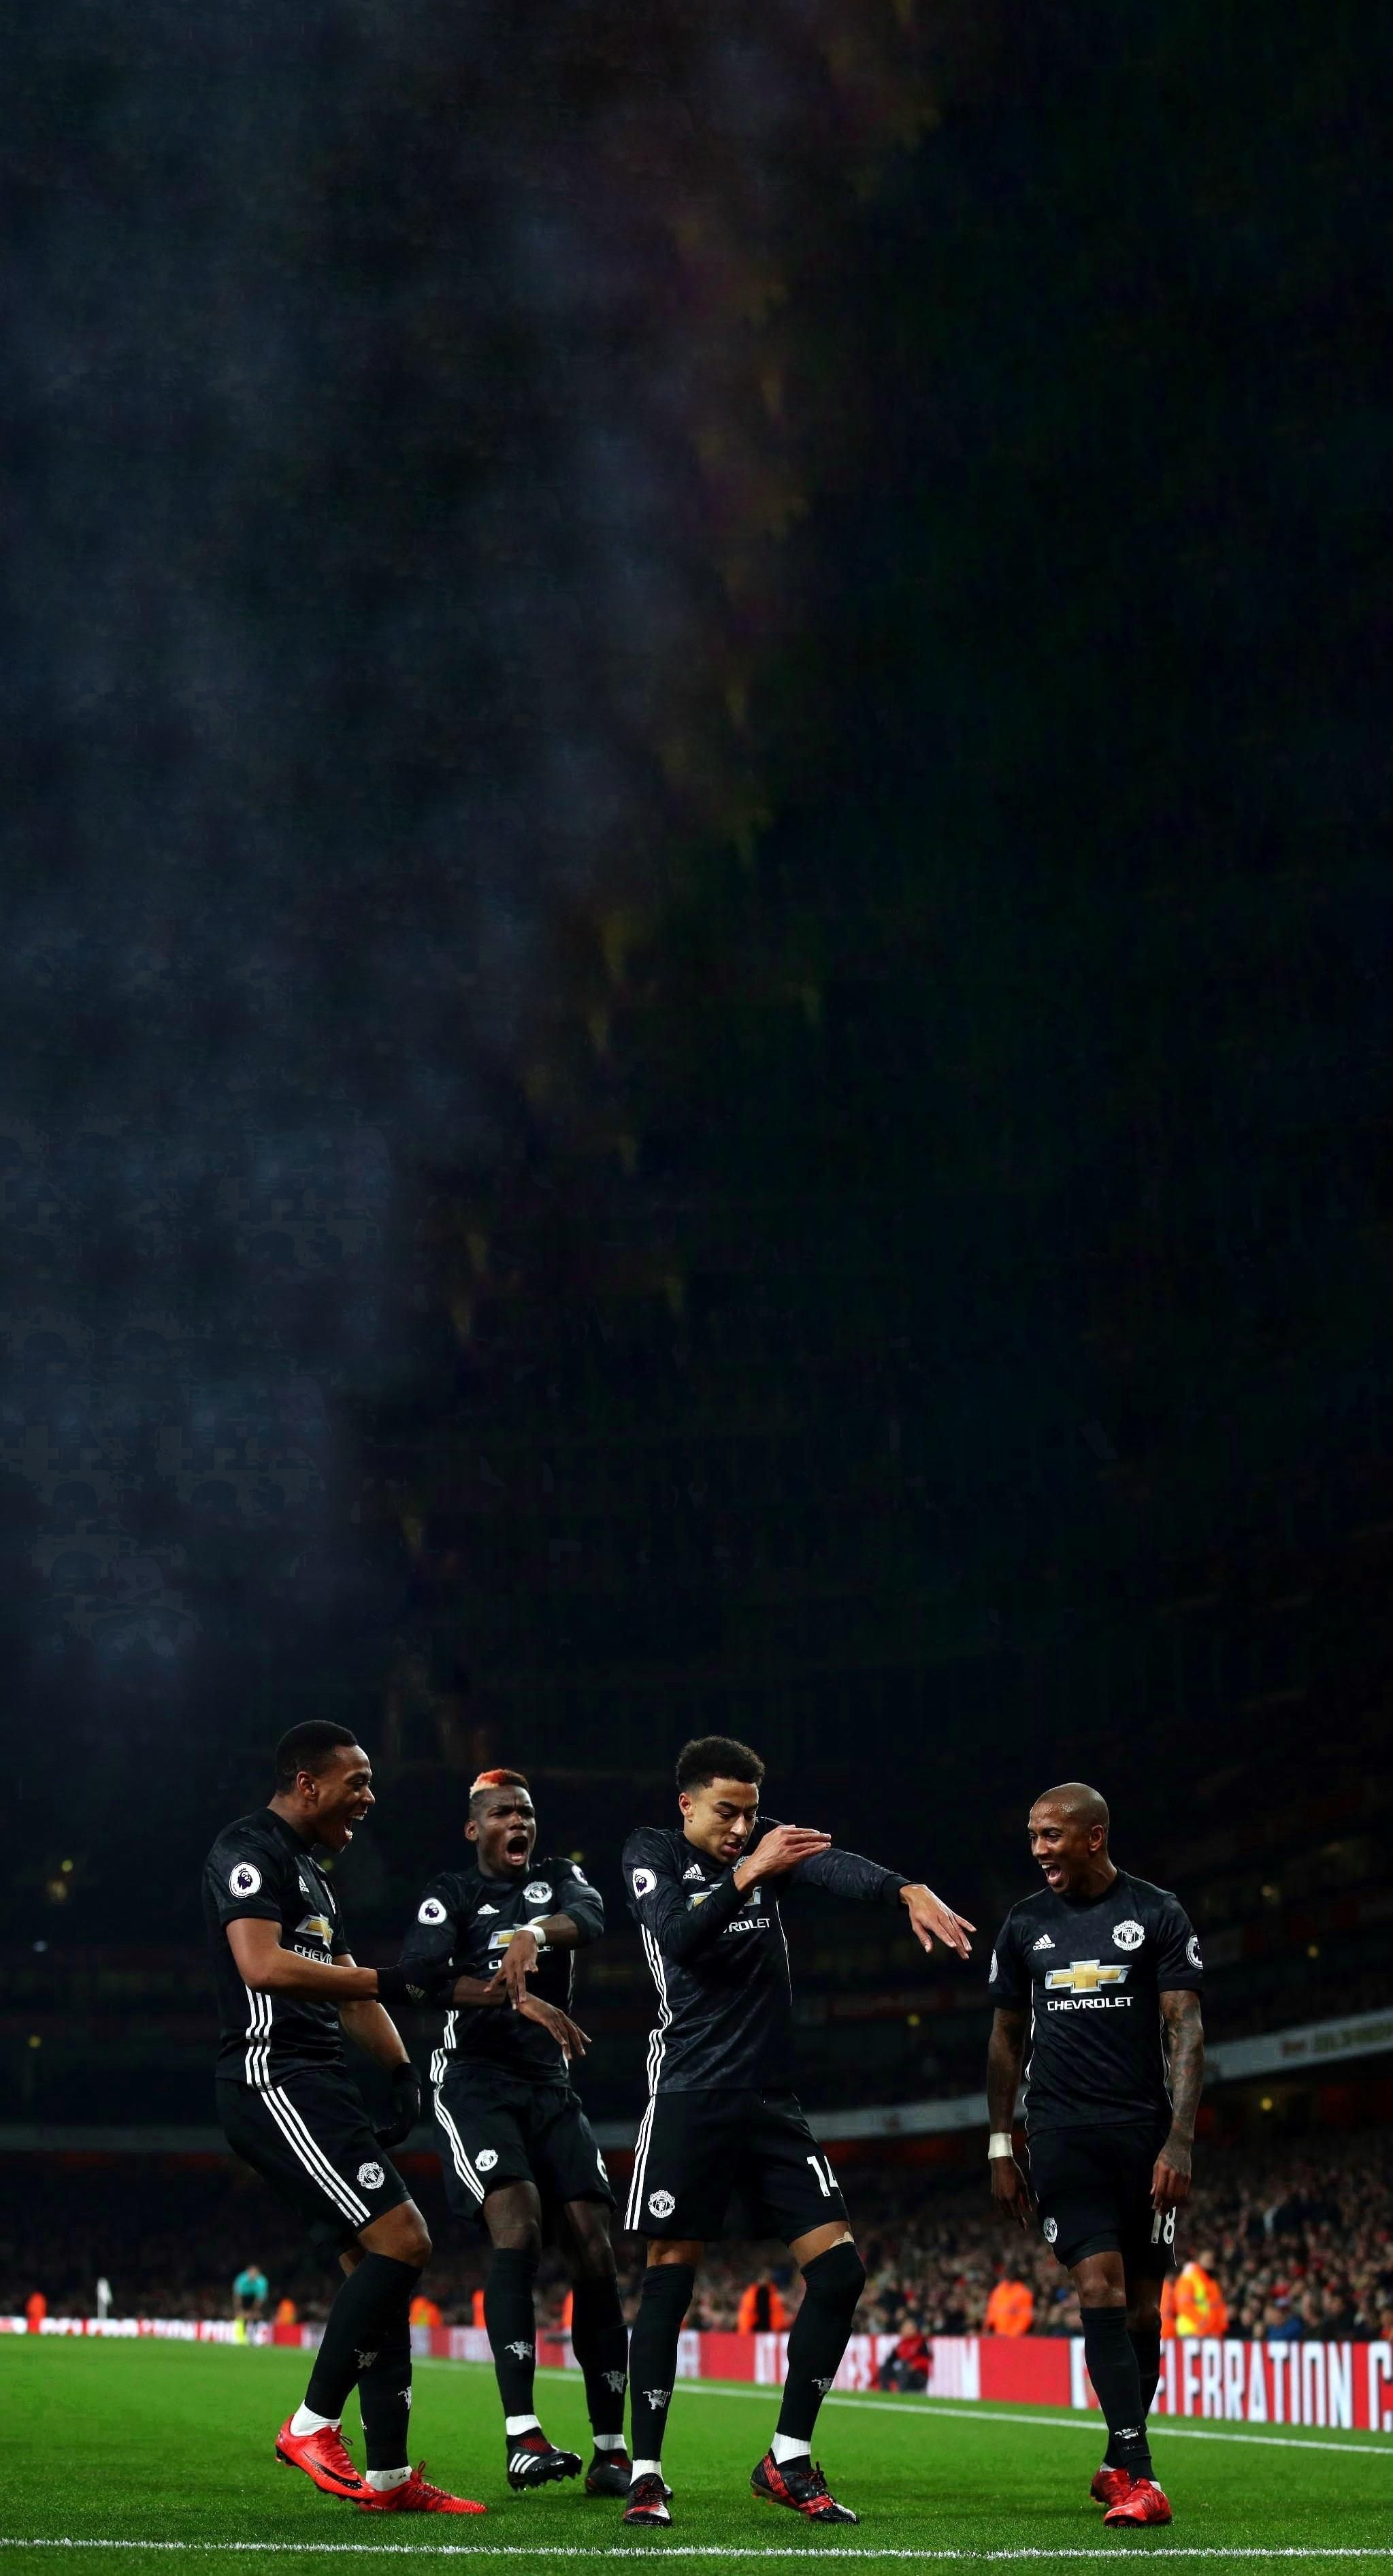 Pin By Vamuso Gaming On Manchester United Football Club Manchester United Wallpaper Manchester United Wallpapers Iphone Manchester United